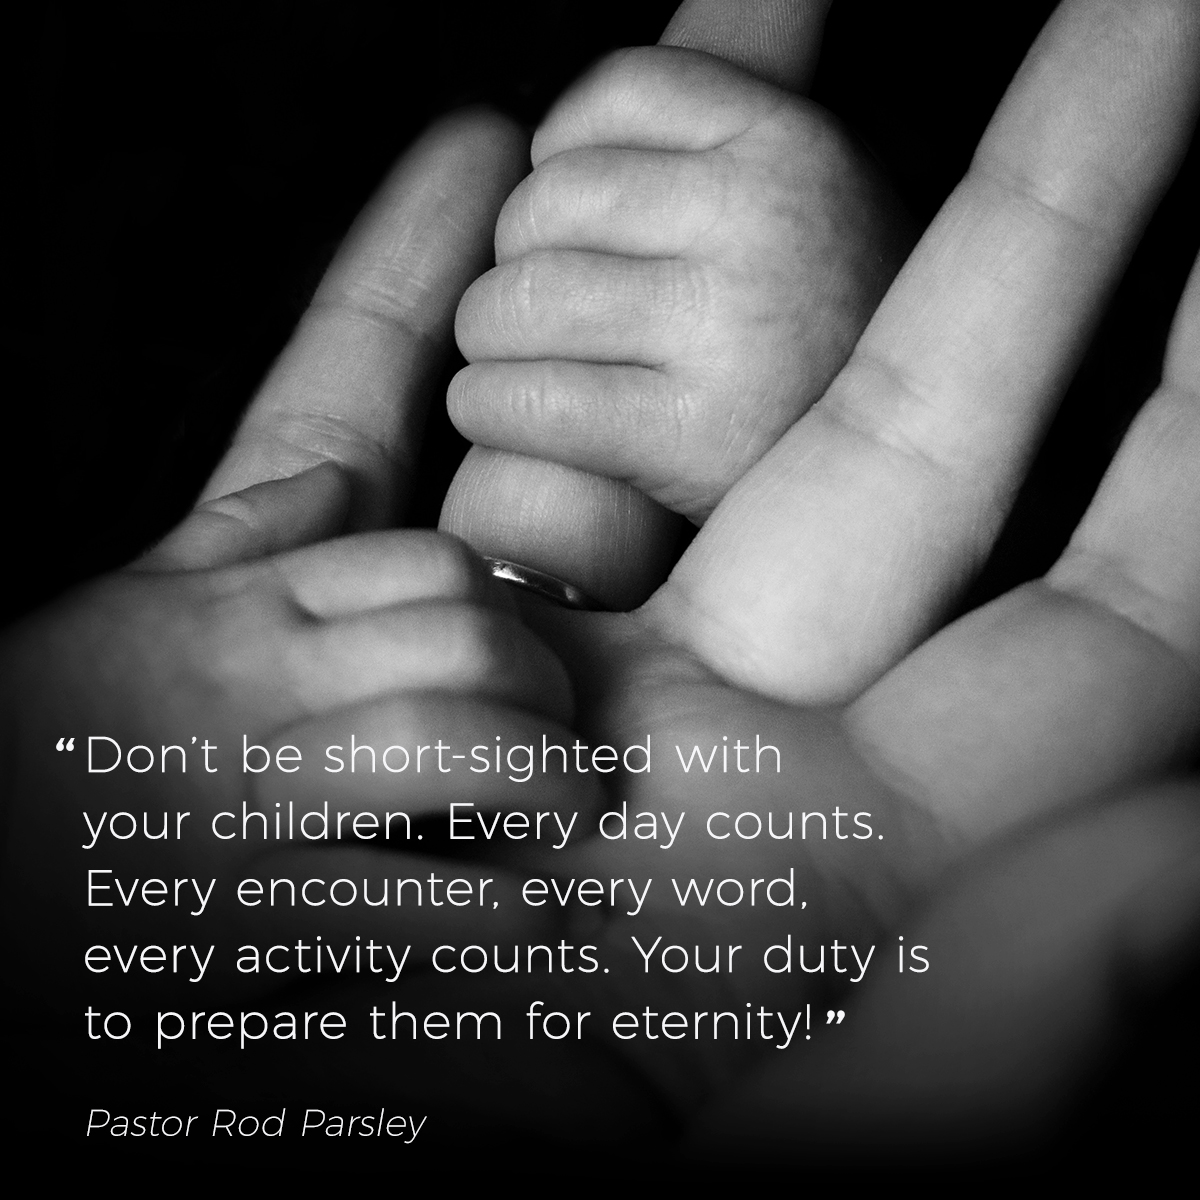 """Don't be short-sighted with your children. Every day counts. Every encounter, every word, every activity counts. Your duty is to prepare them for eternity!"" – Pastor Rod Parsley"